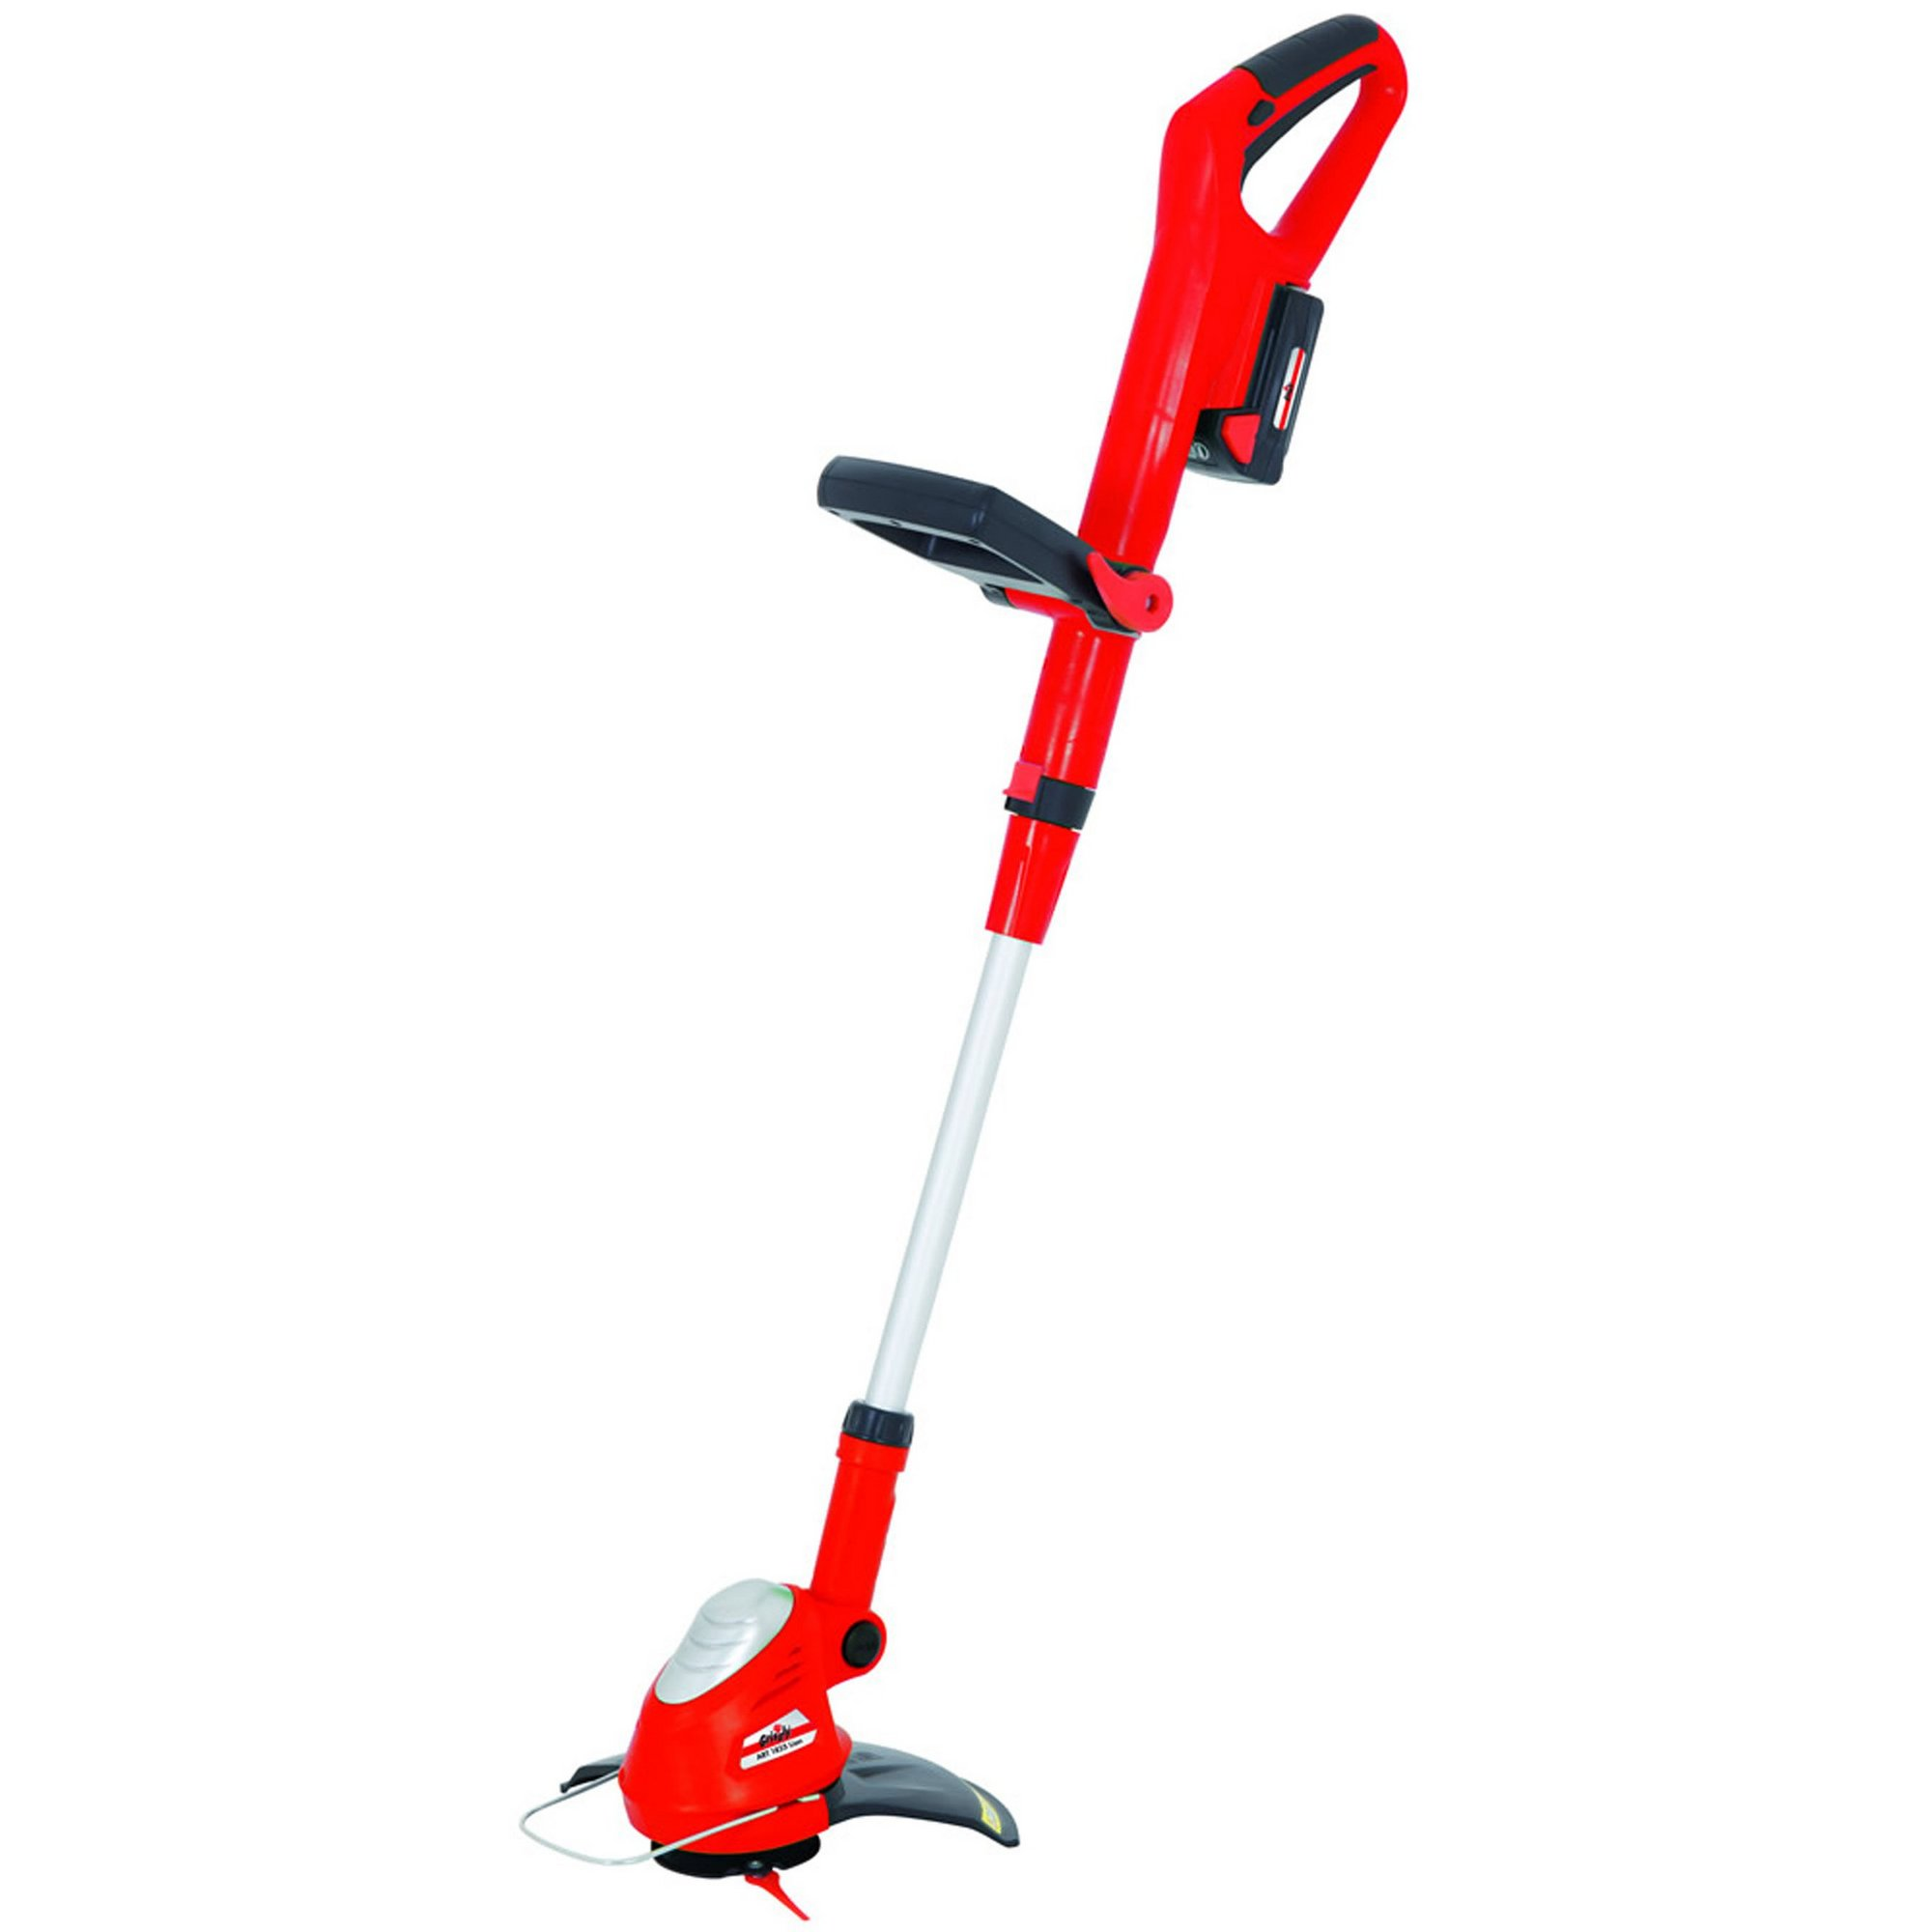 Image of Grizzly Lawn And Edge Trimmer